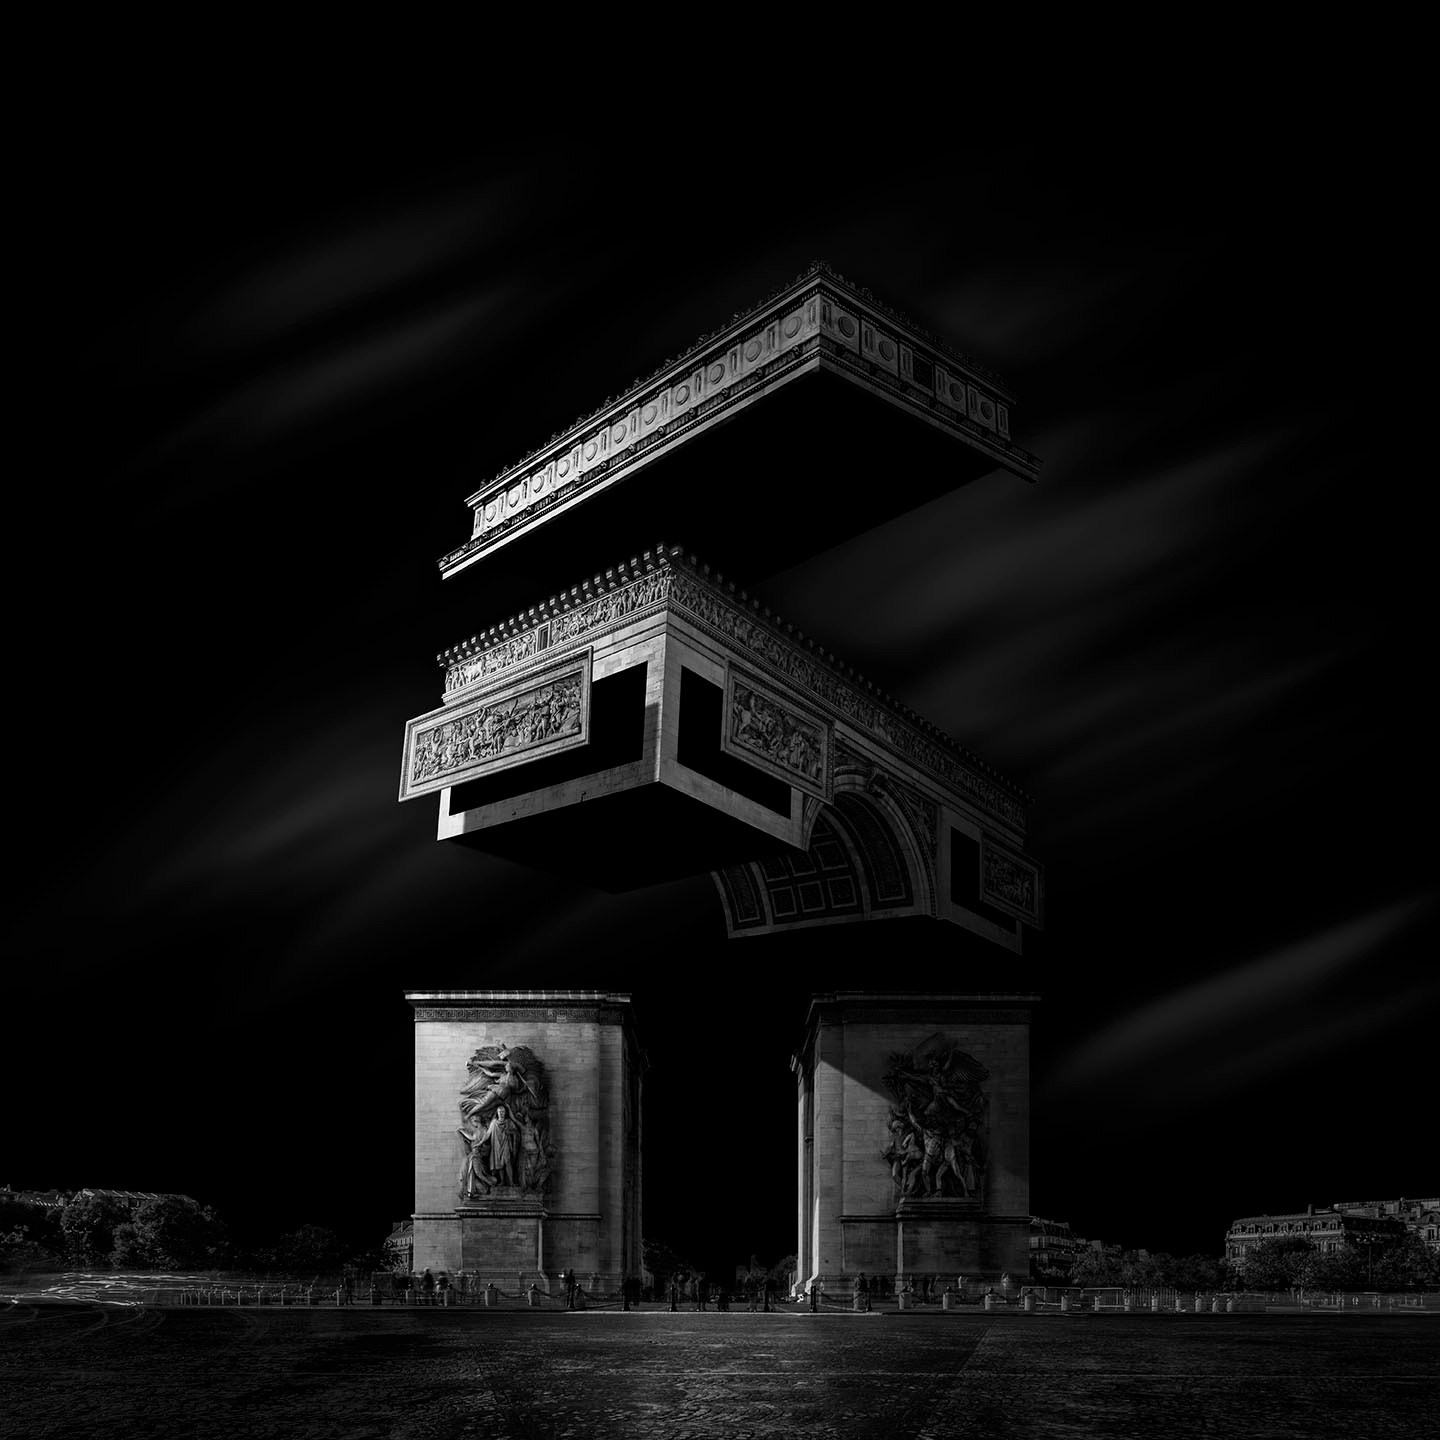 daniel-garay-arango-black-white-deconstructed-monuments-1